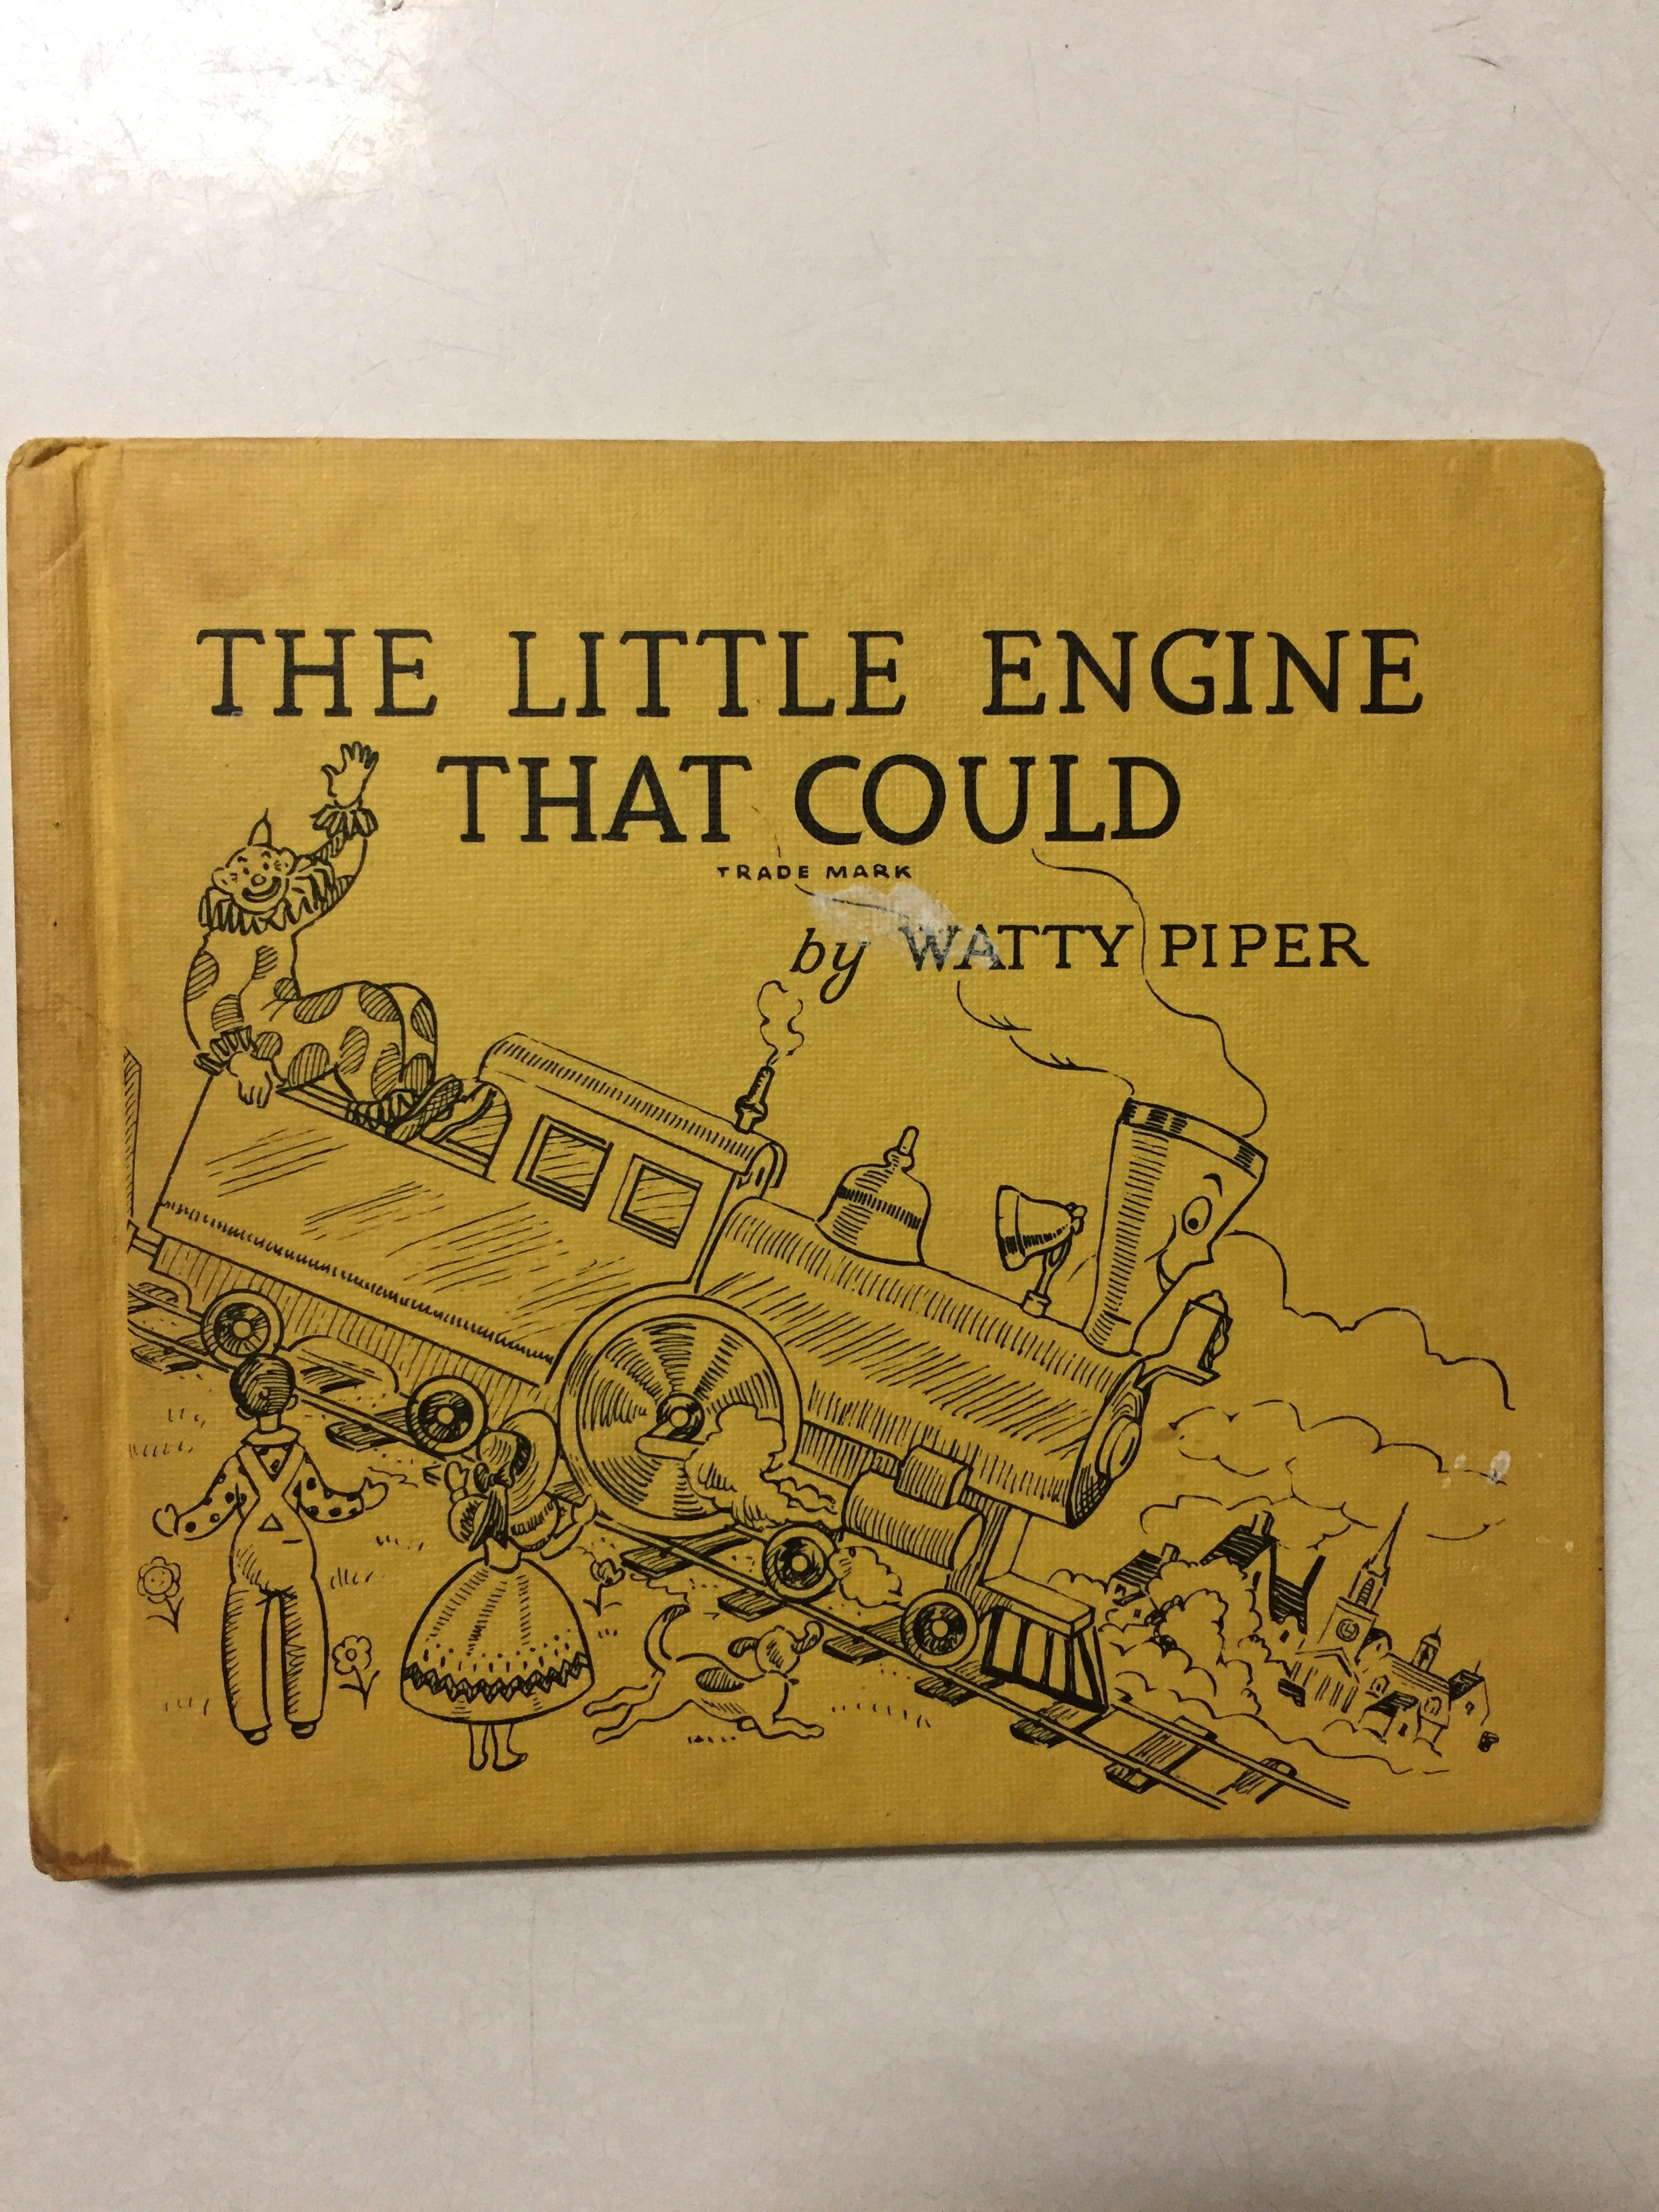 The Little Engine That Could - Slick Cat Books